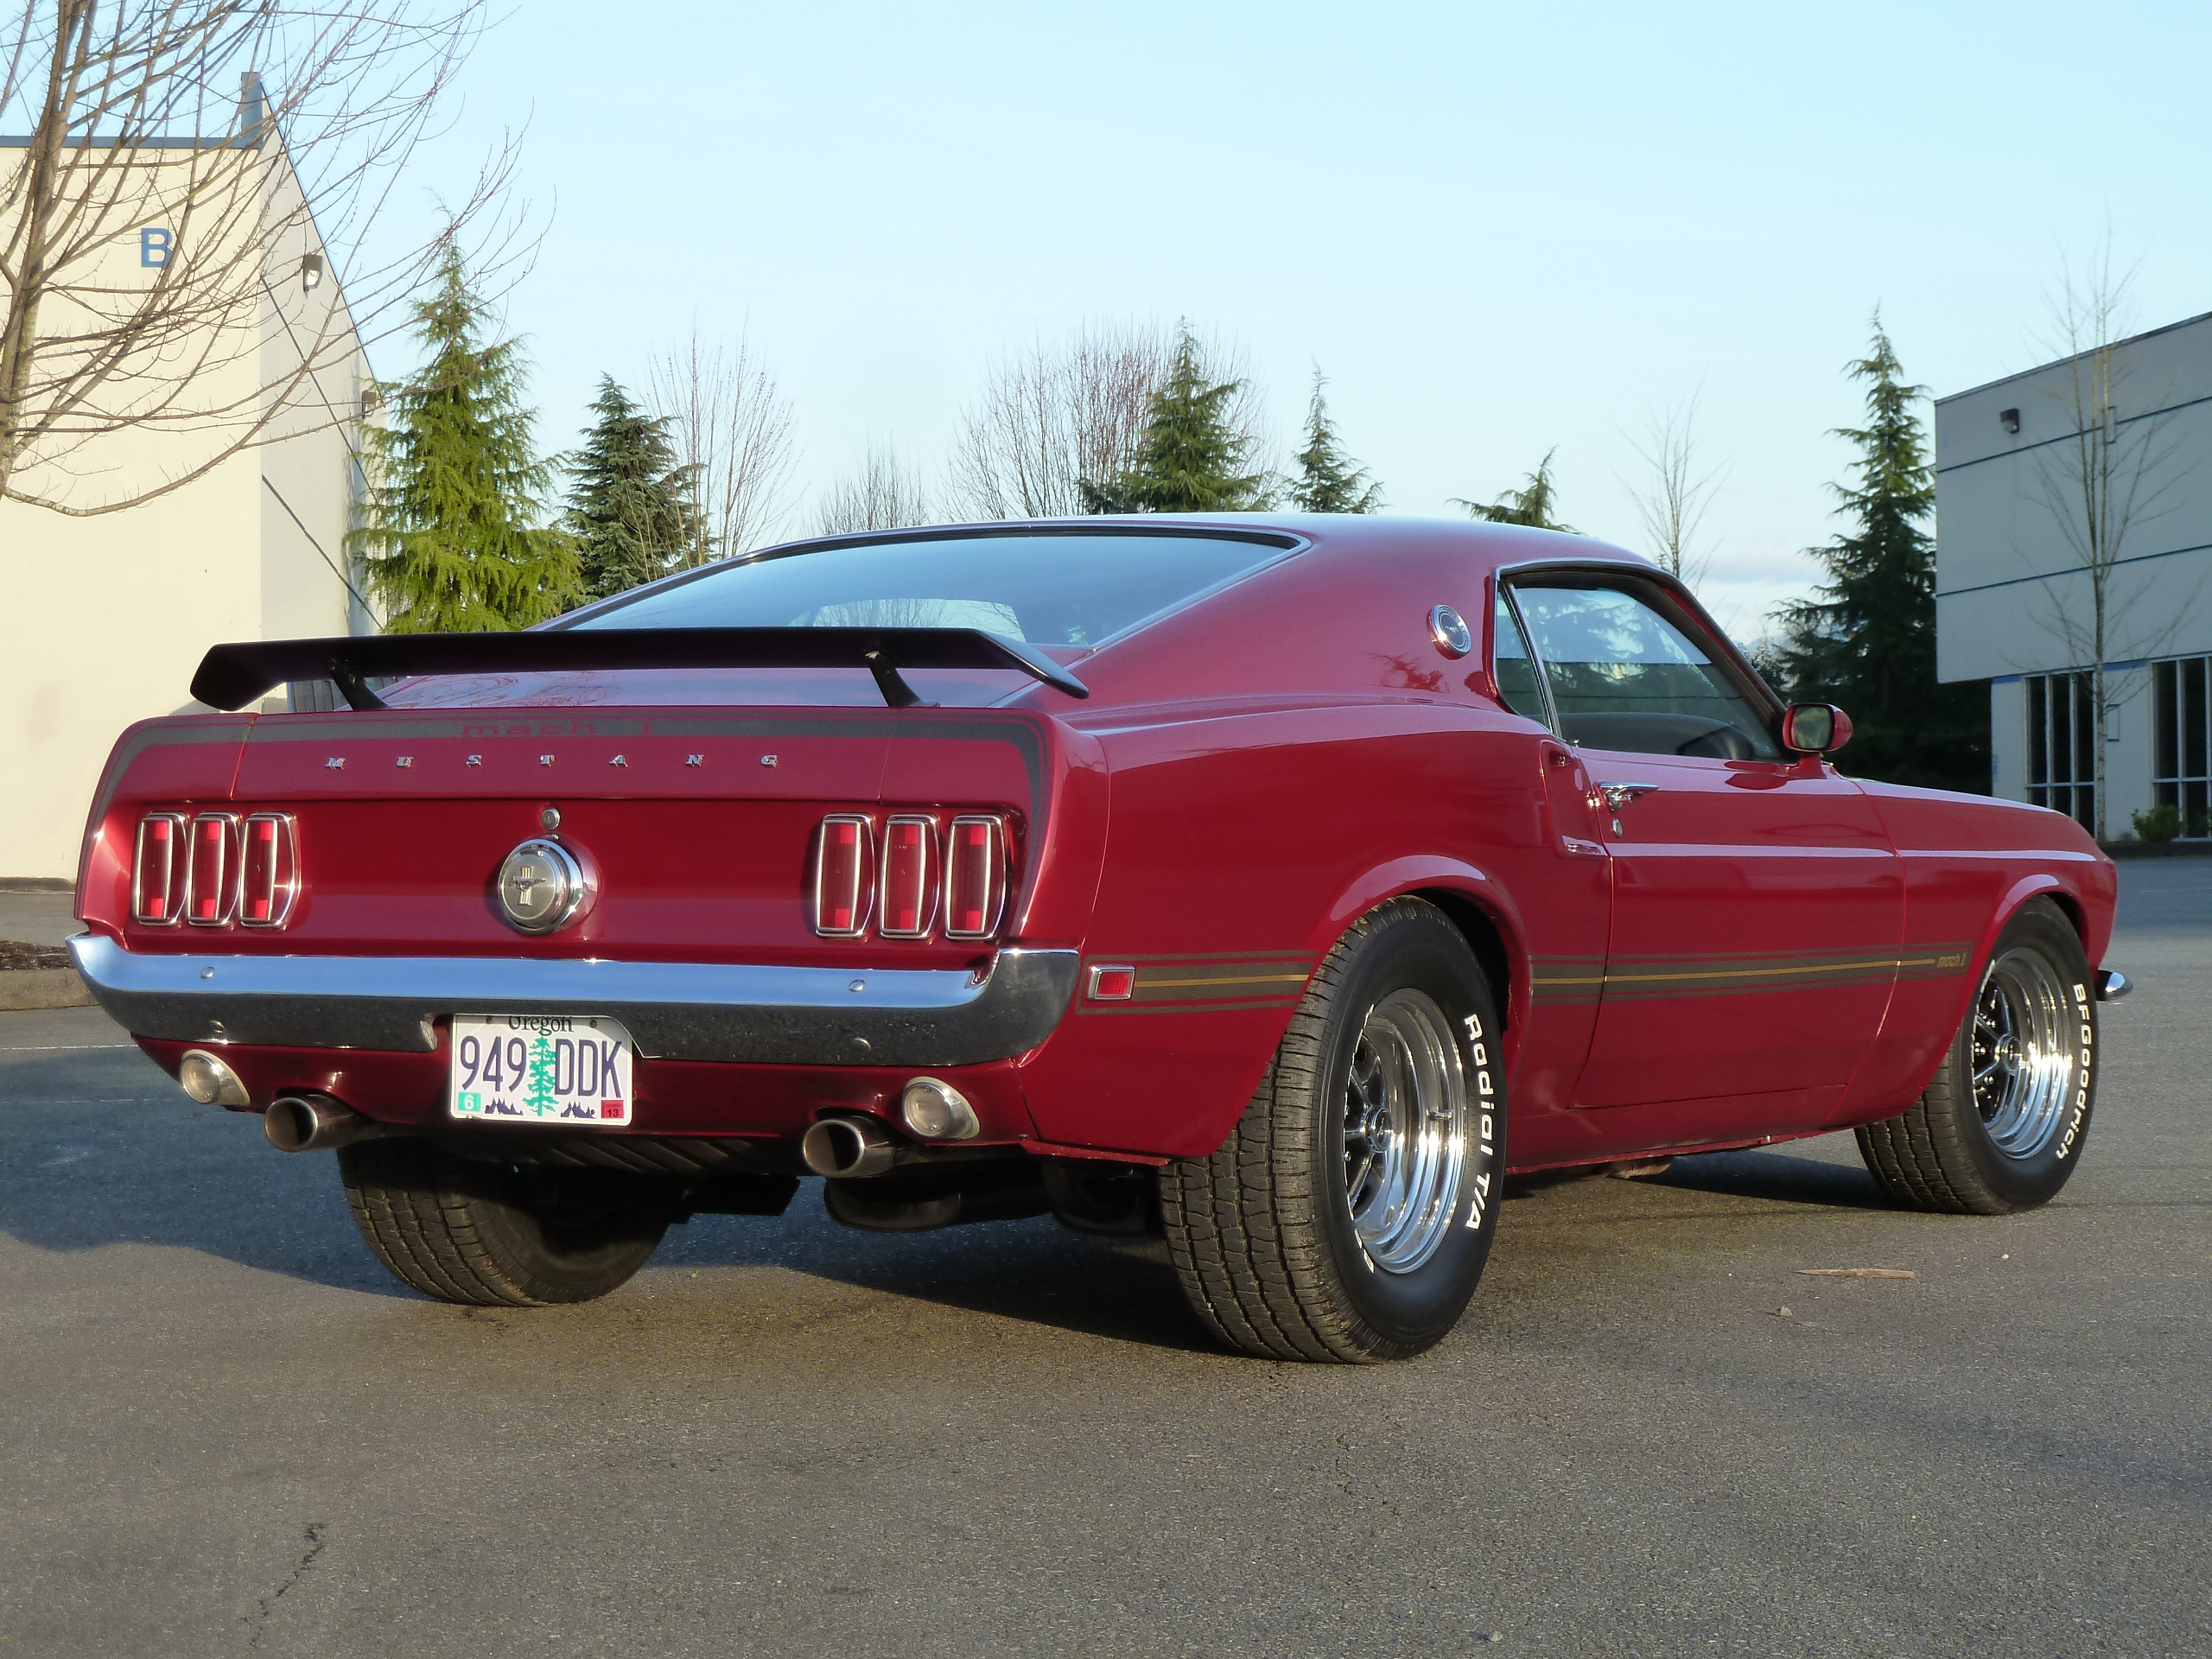 1969 Ford Mustang Mach 1 For Sale In Renton Washington  Apps